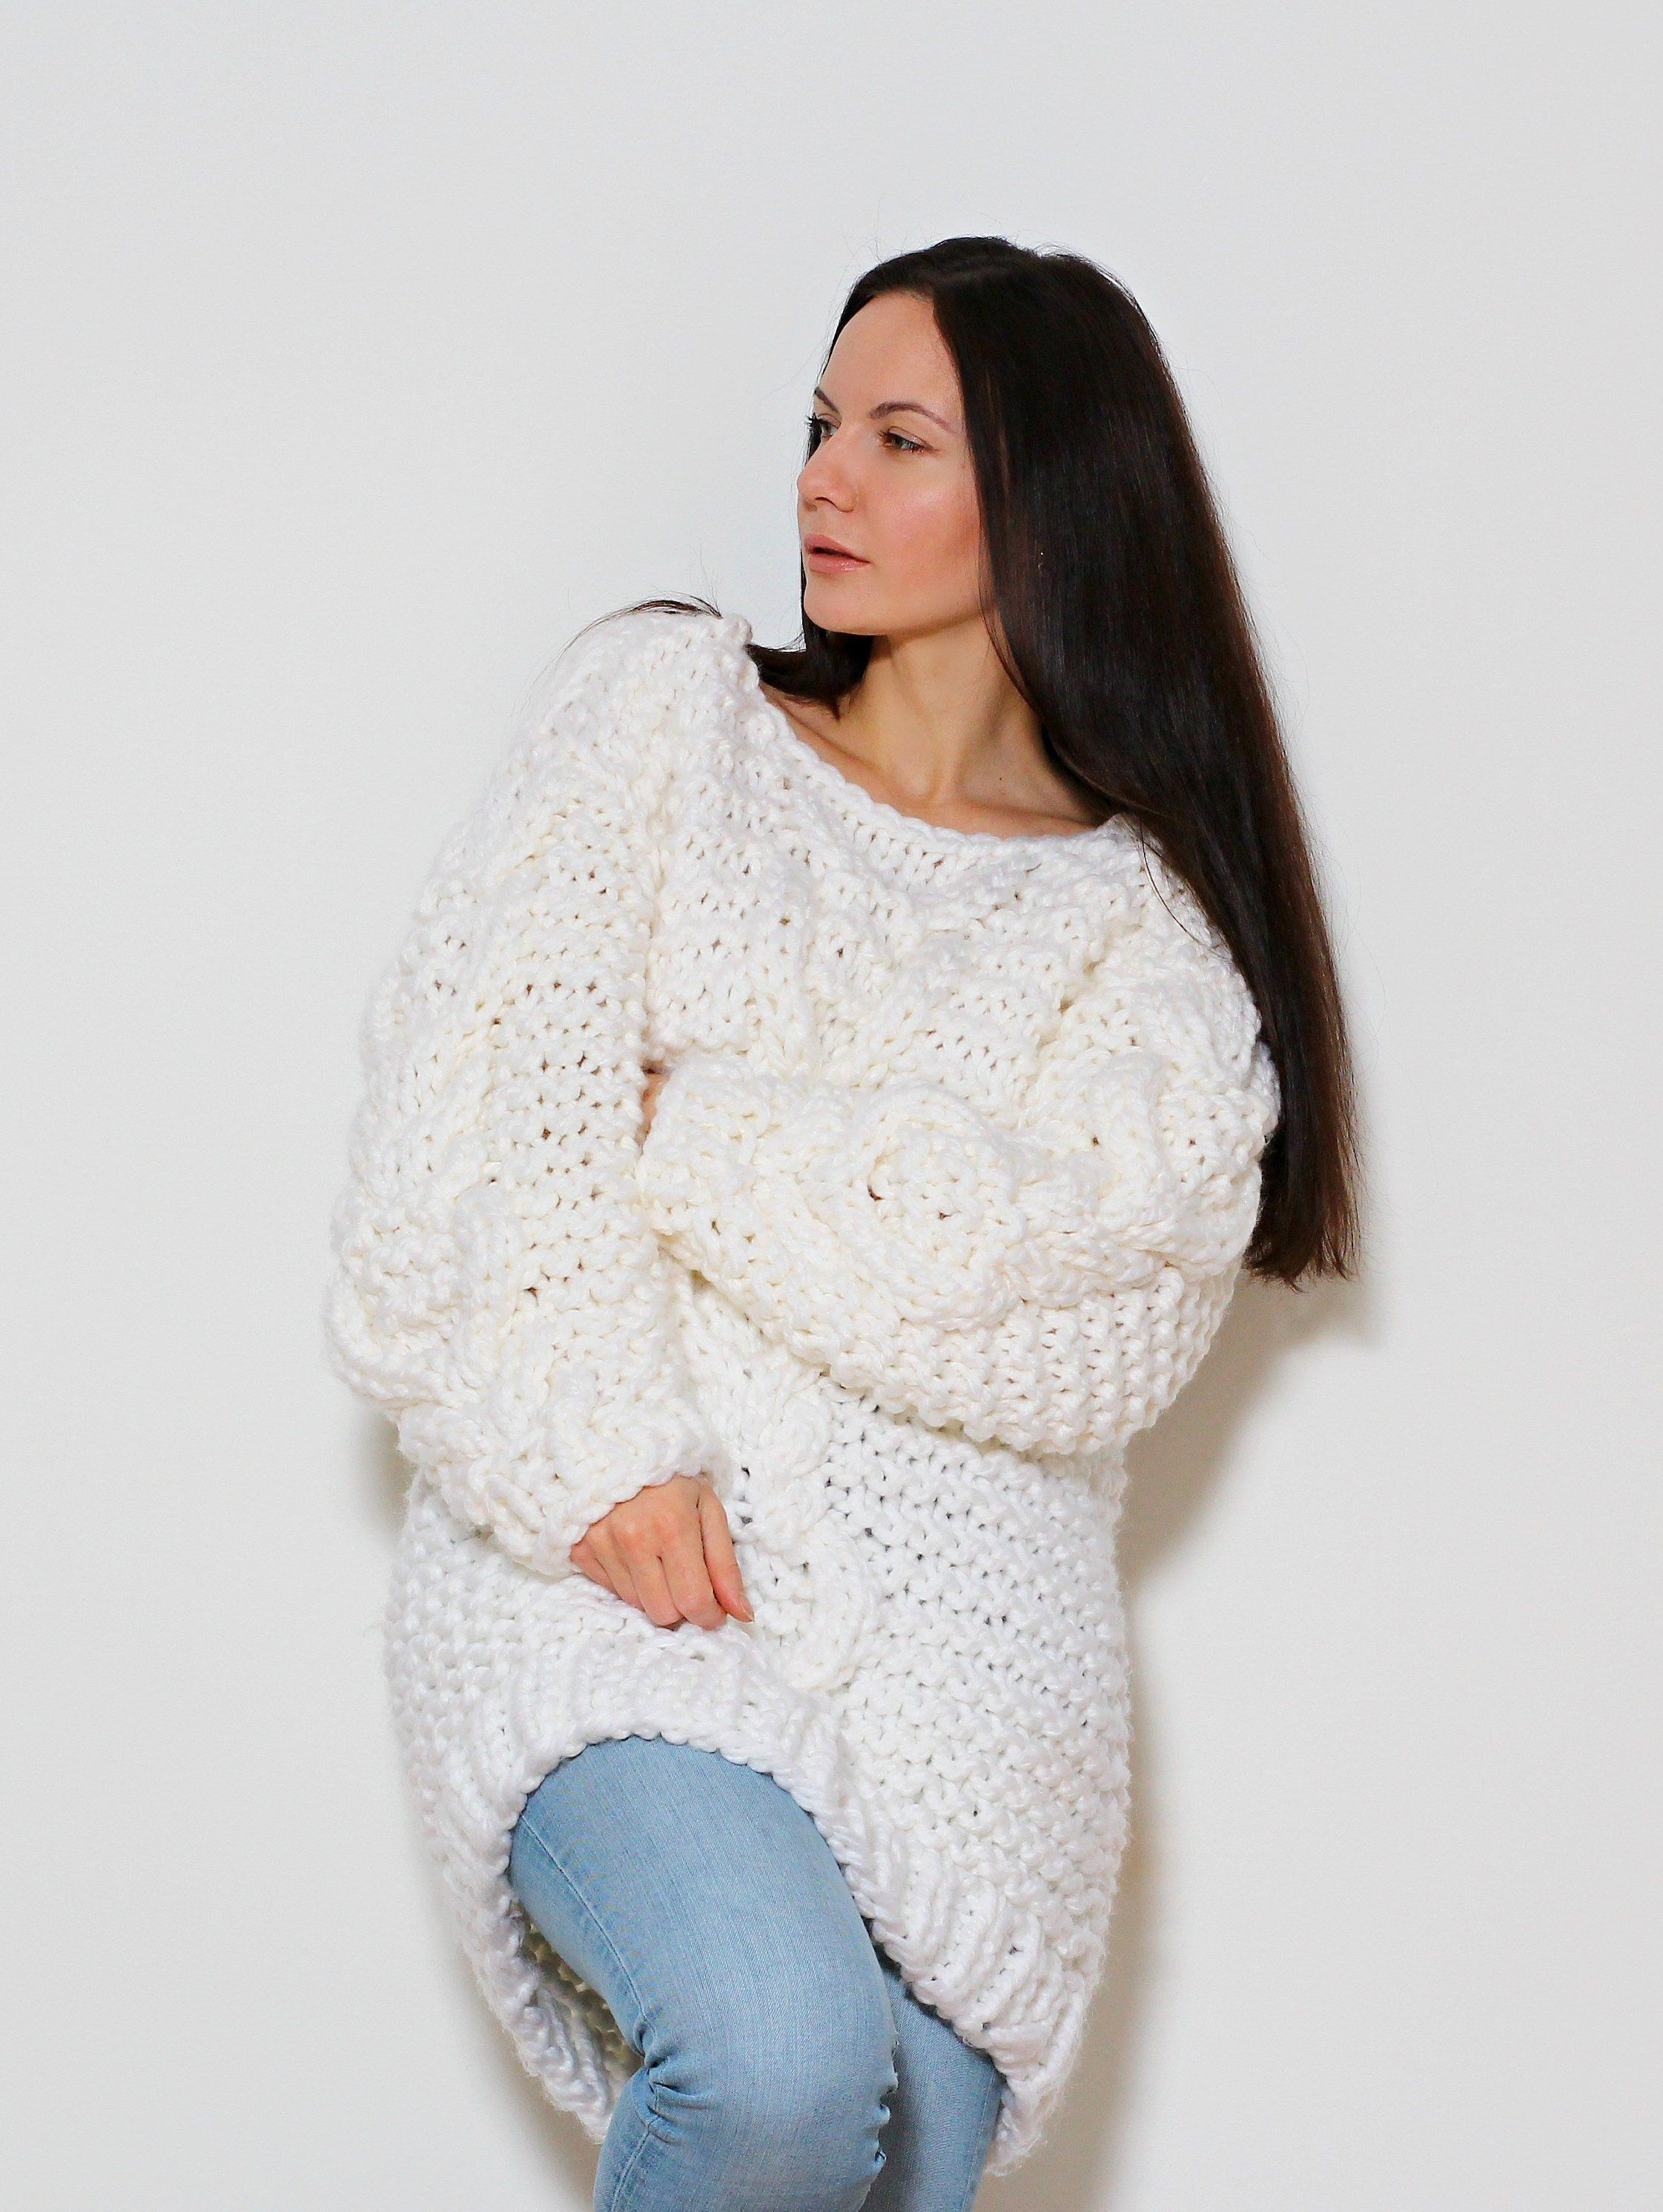 Baby Alpaka Grobstrick Pullover Pullover Kleid Lange Etsy Chunky Knits Sweater Beautiful Womens Sweaters Sweaters